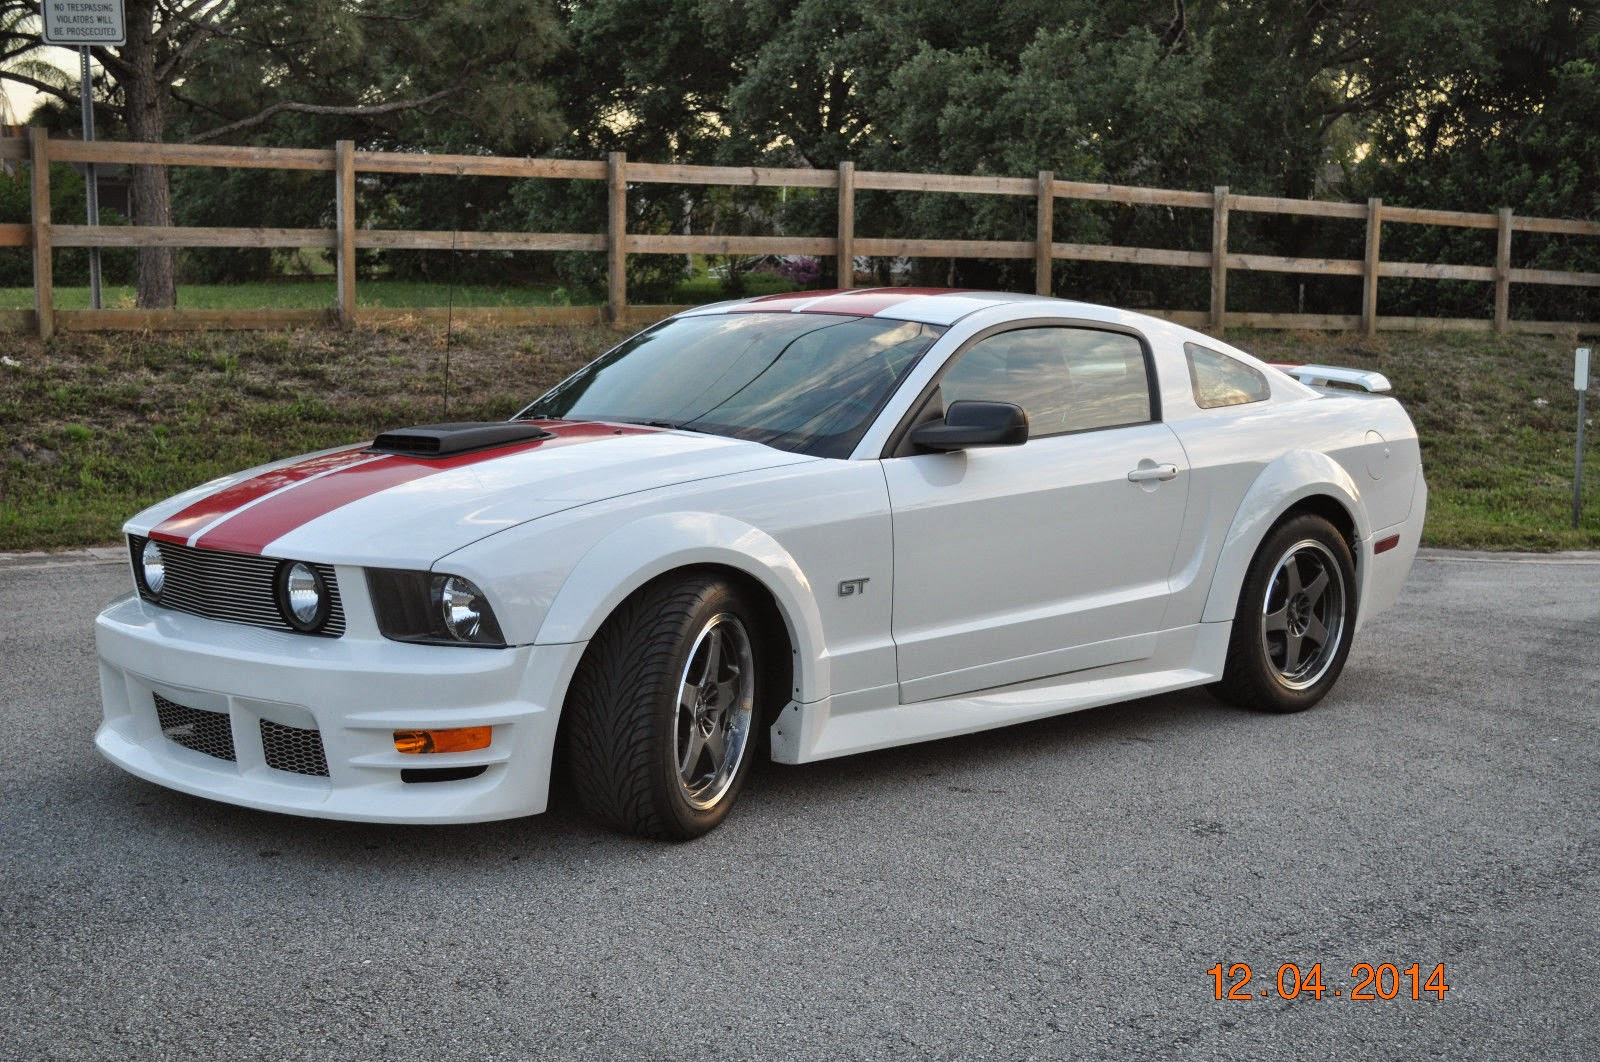 2005 ford mustang gt coupe premium vortech supercharged white with red trim and red leather interior low miles this car has only 9404 original miles